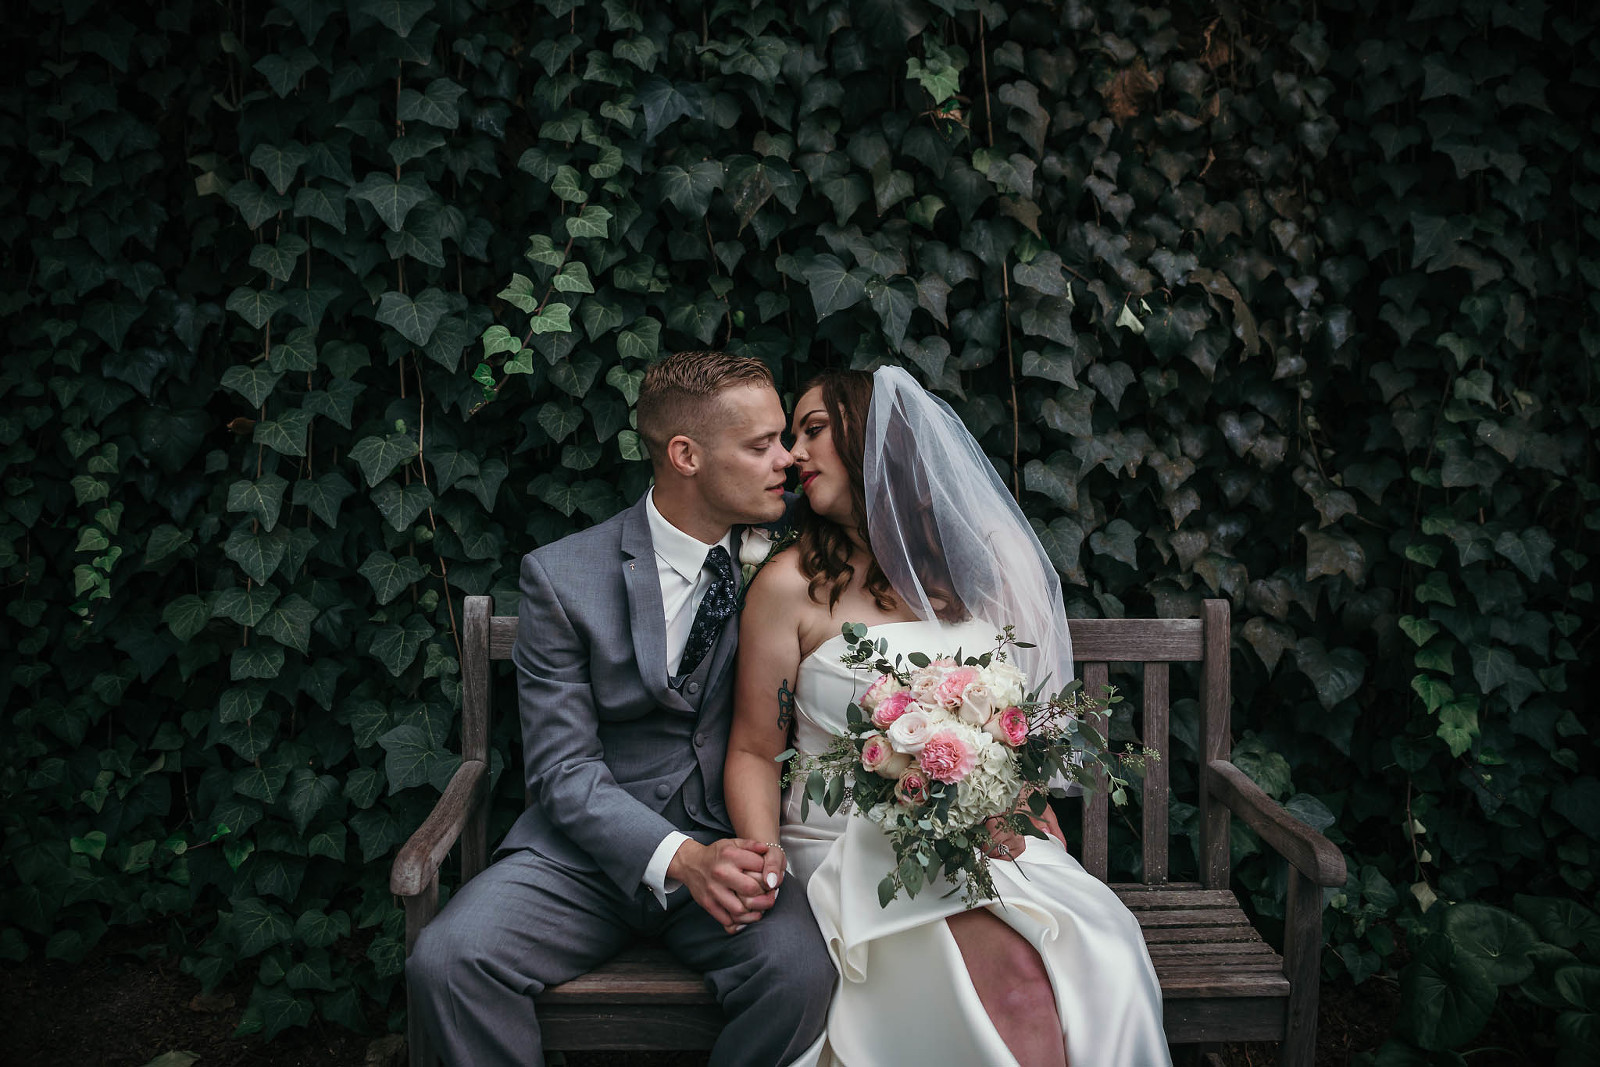 Bride and groom sitting on bench, kissing in front of ivy wall during romantic portrait session at Art Deco inspired summer wedding at the Foellinger-Freimann Botanical Conservatory in Fort Wayne, Indiana